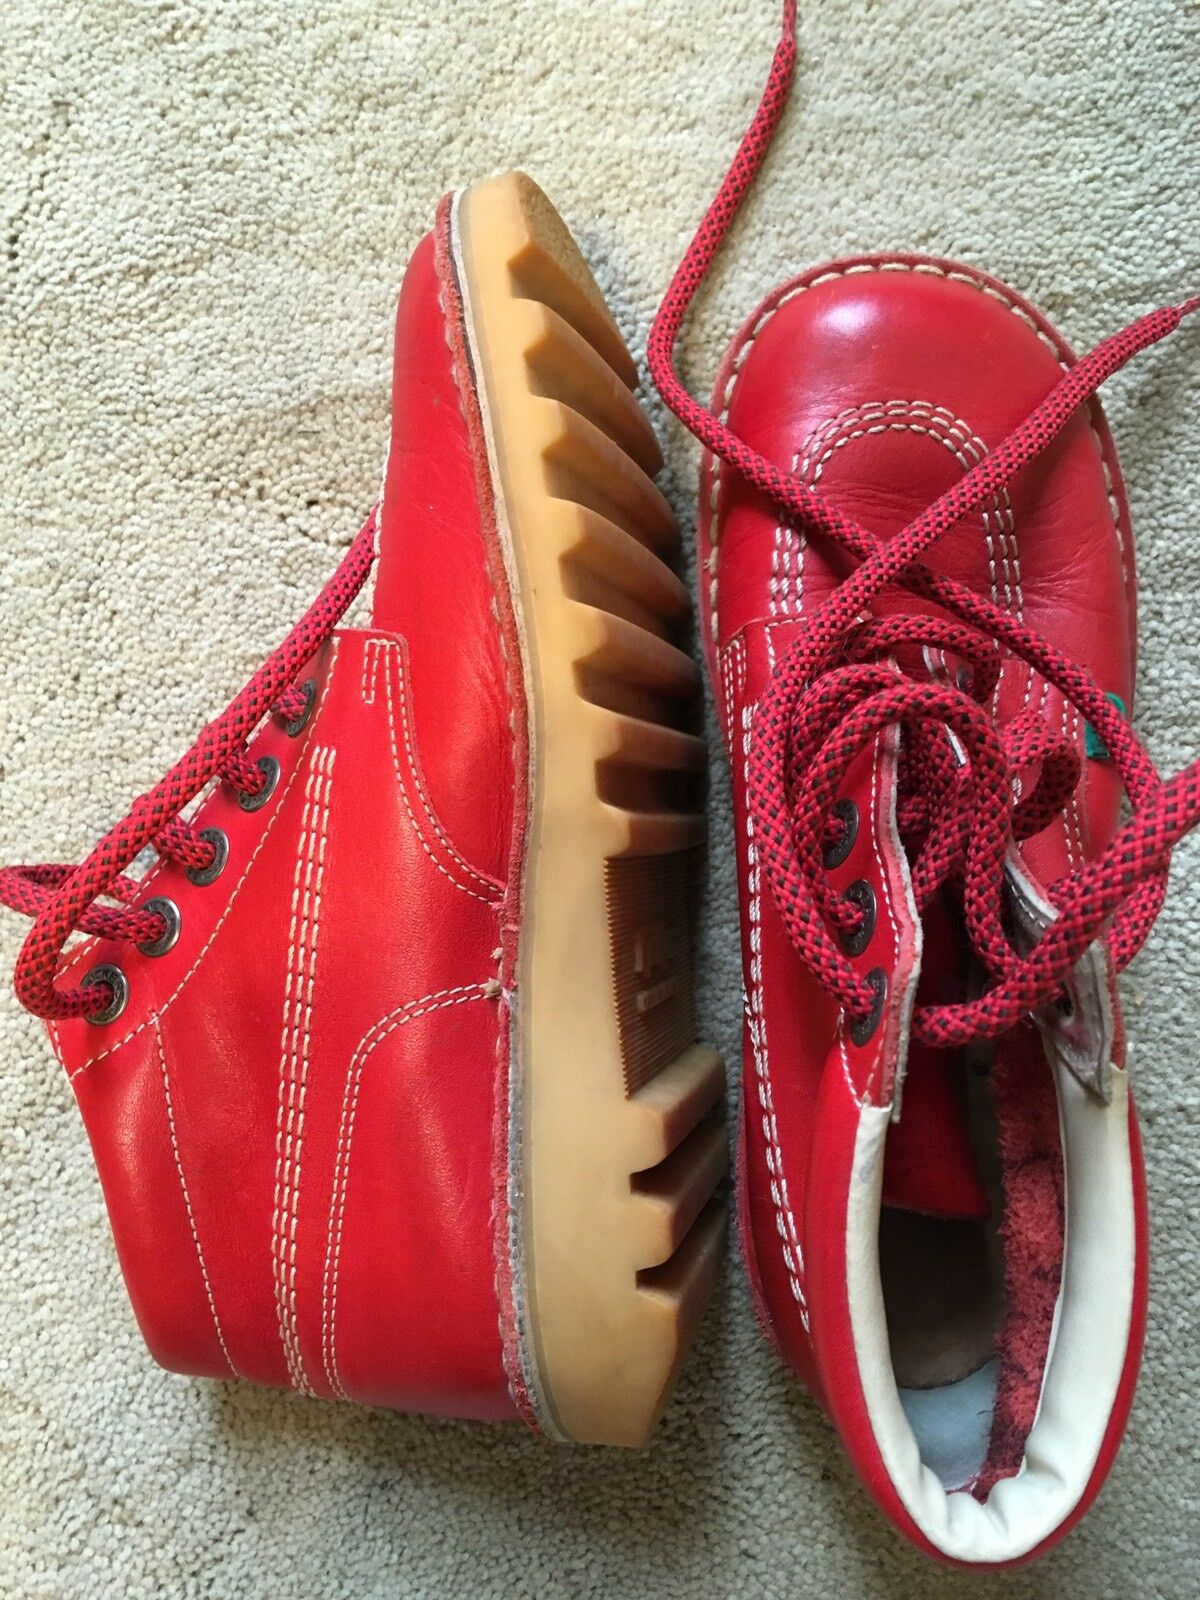 Kickers Ankle Boots Boots Boots Flat,Leather,Red,Lace Up,Ladies Size 4(37)Used Twice ec7deb